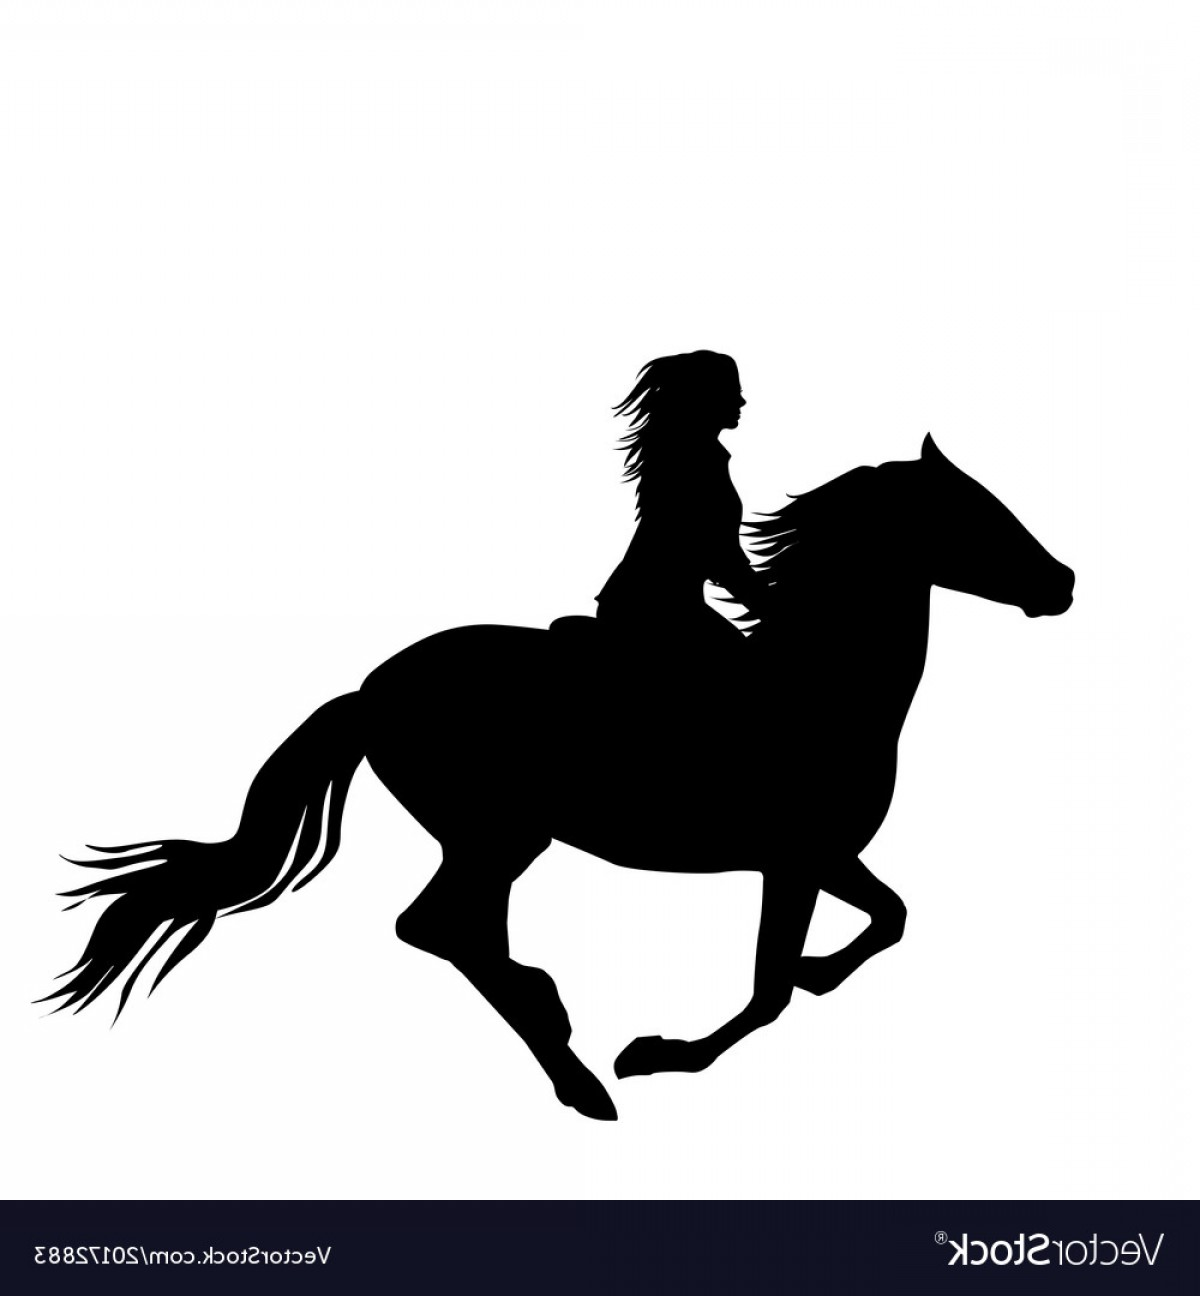 Horse And Rider Vector Art: Black Silhouette Of A Woman Rider A Running Horse Vector